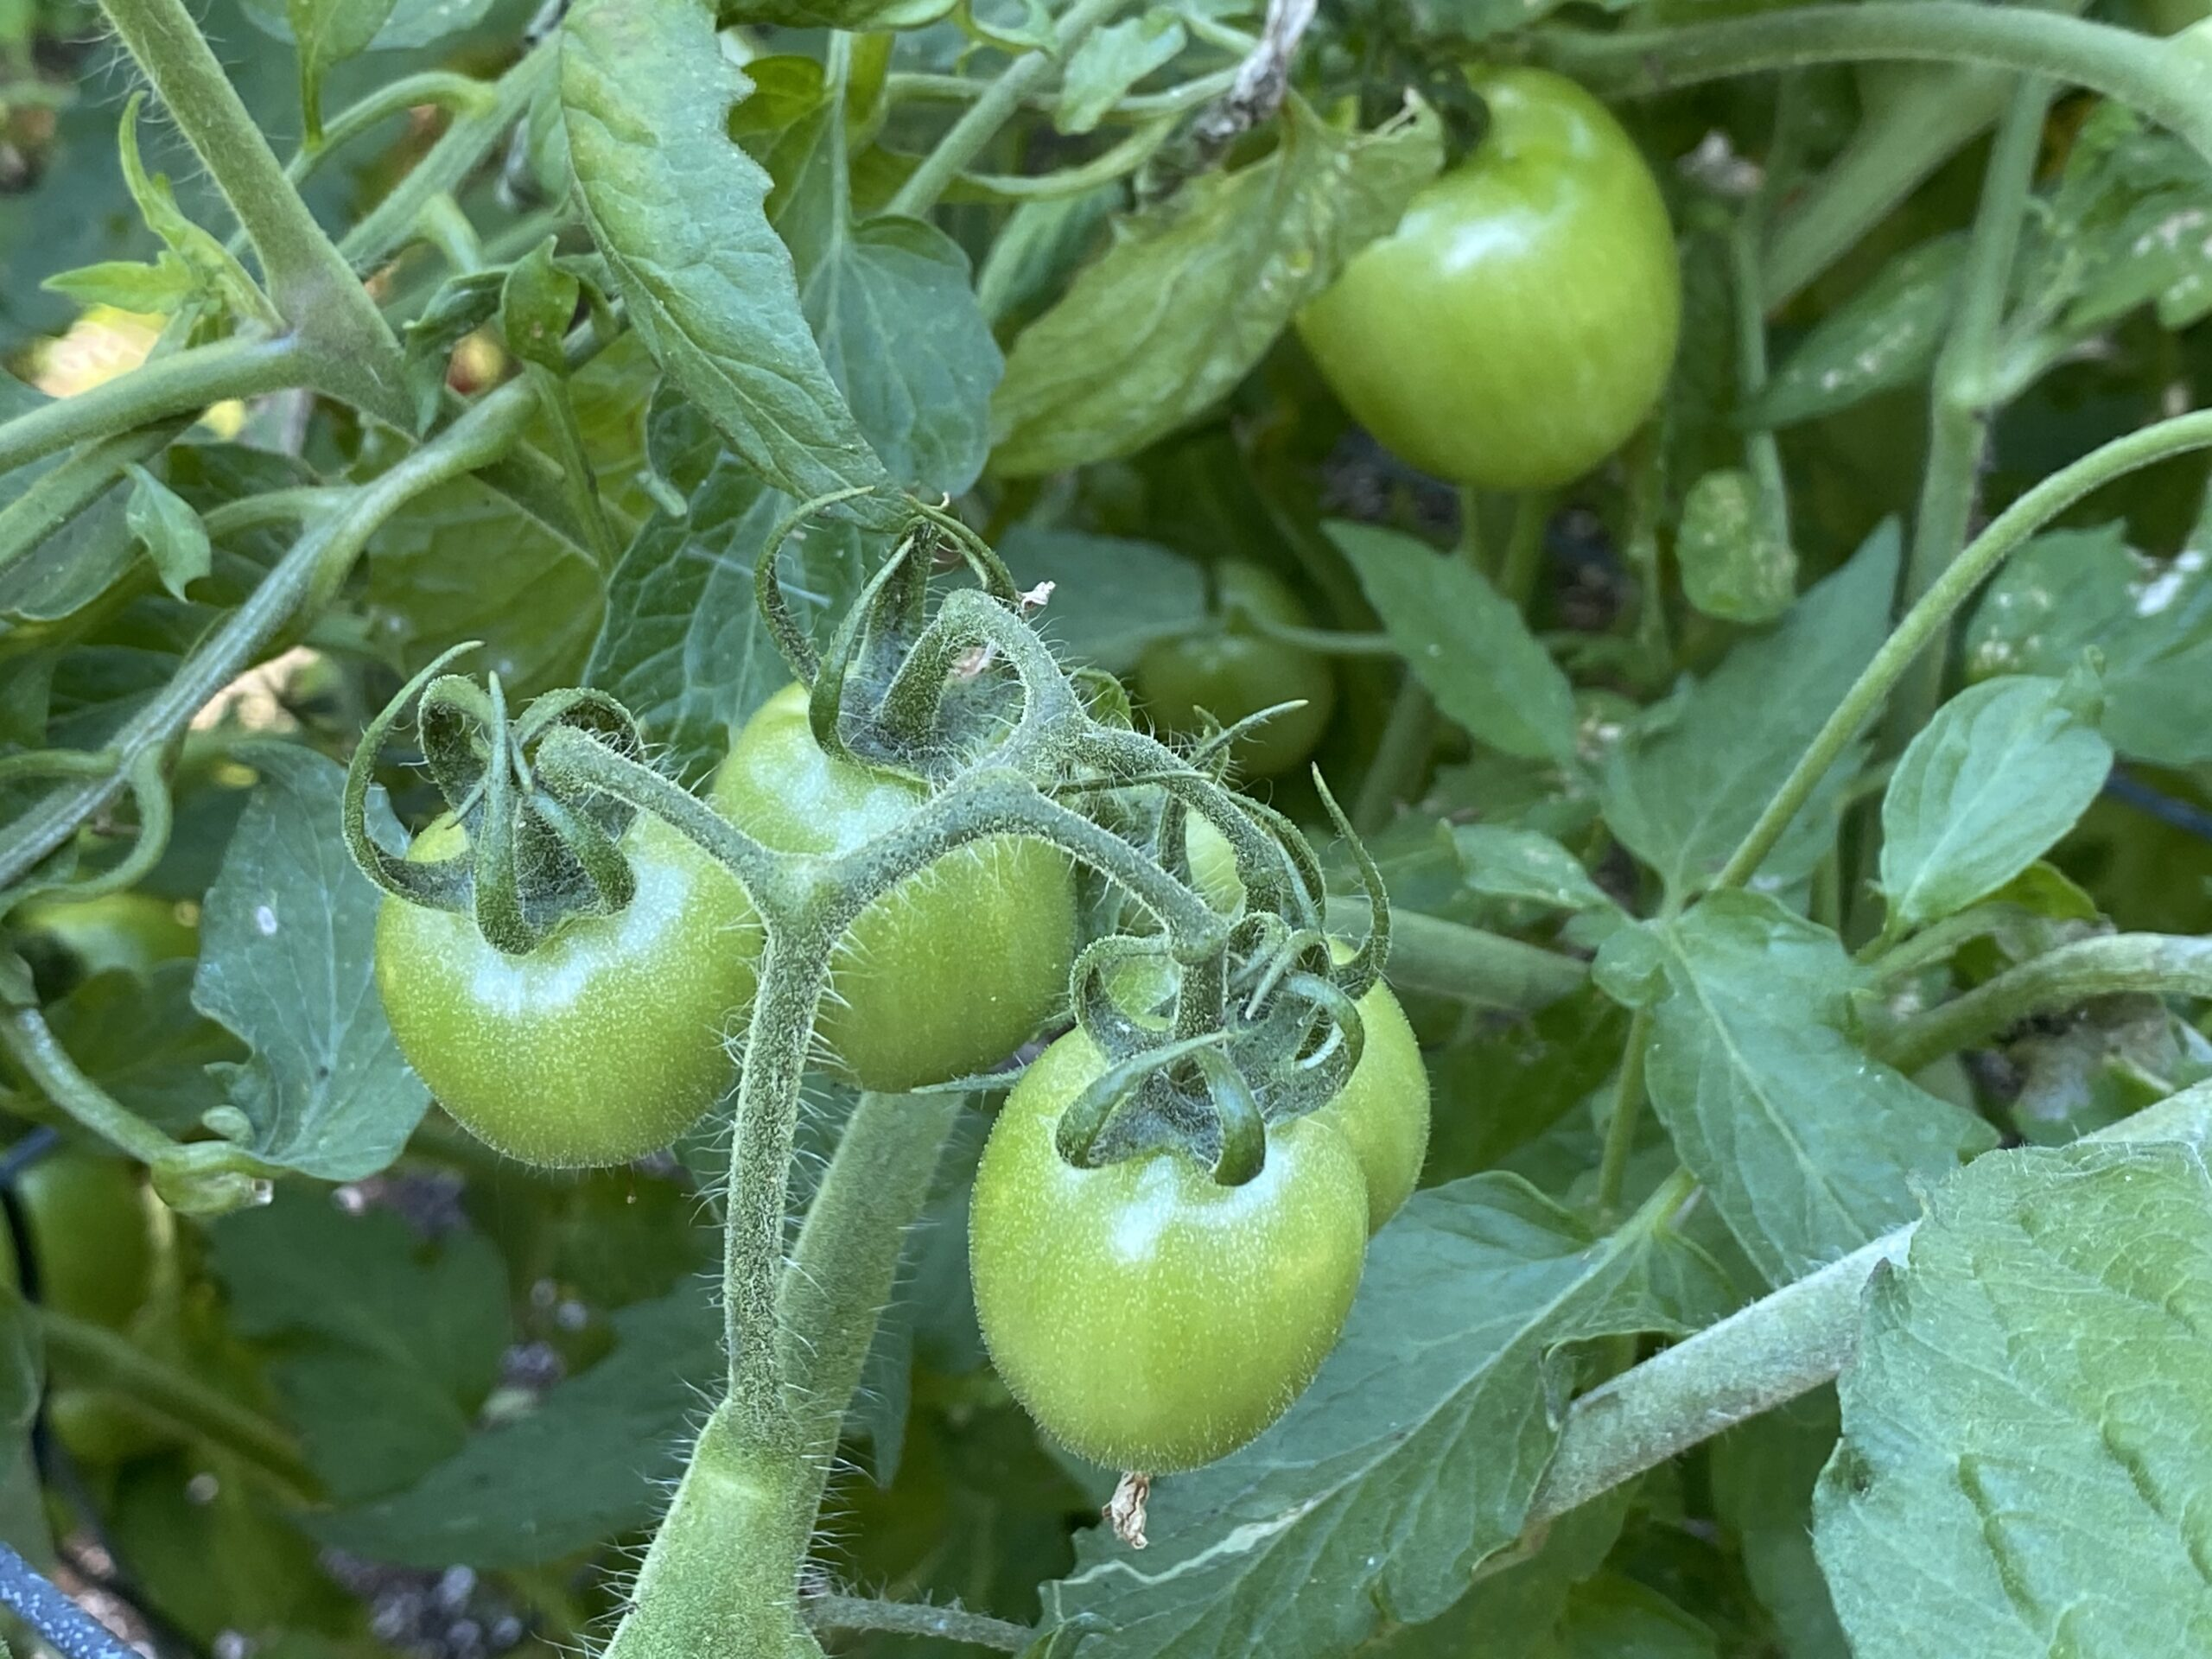 Young green garden gem tomatoes on vine